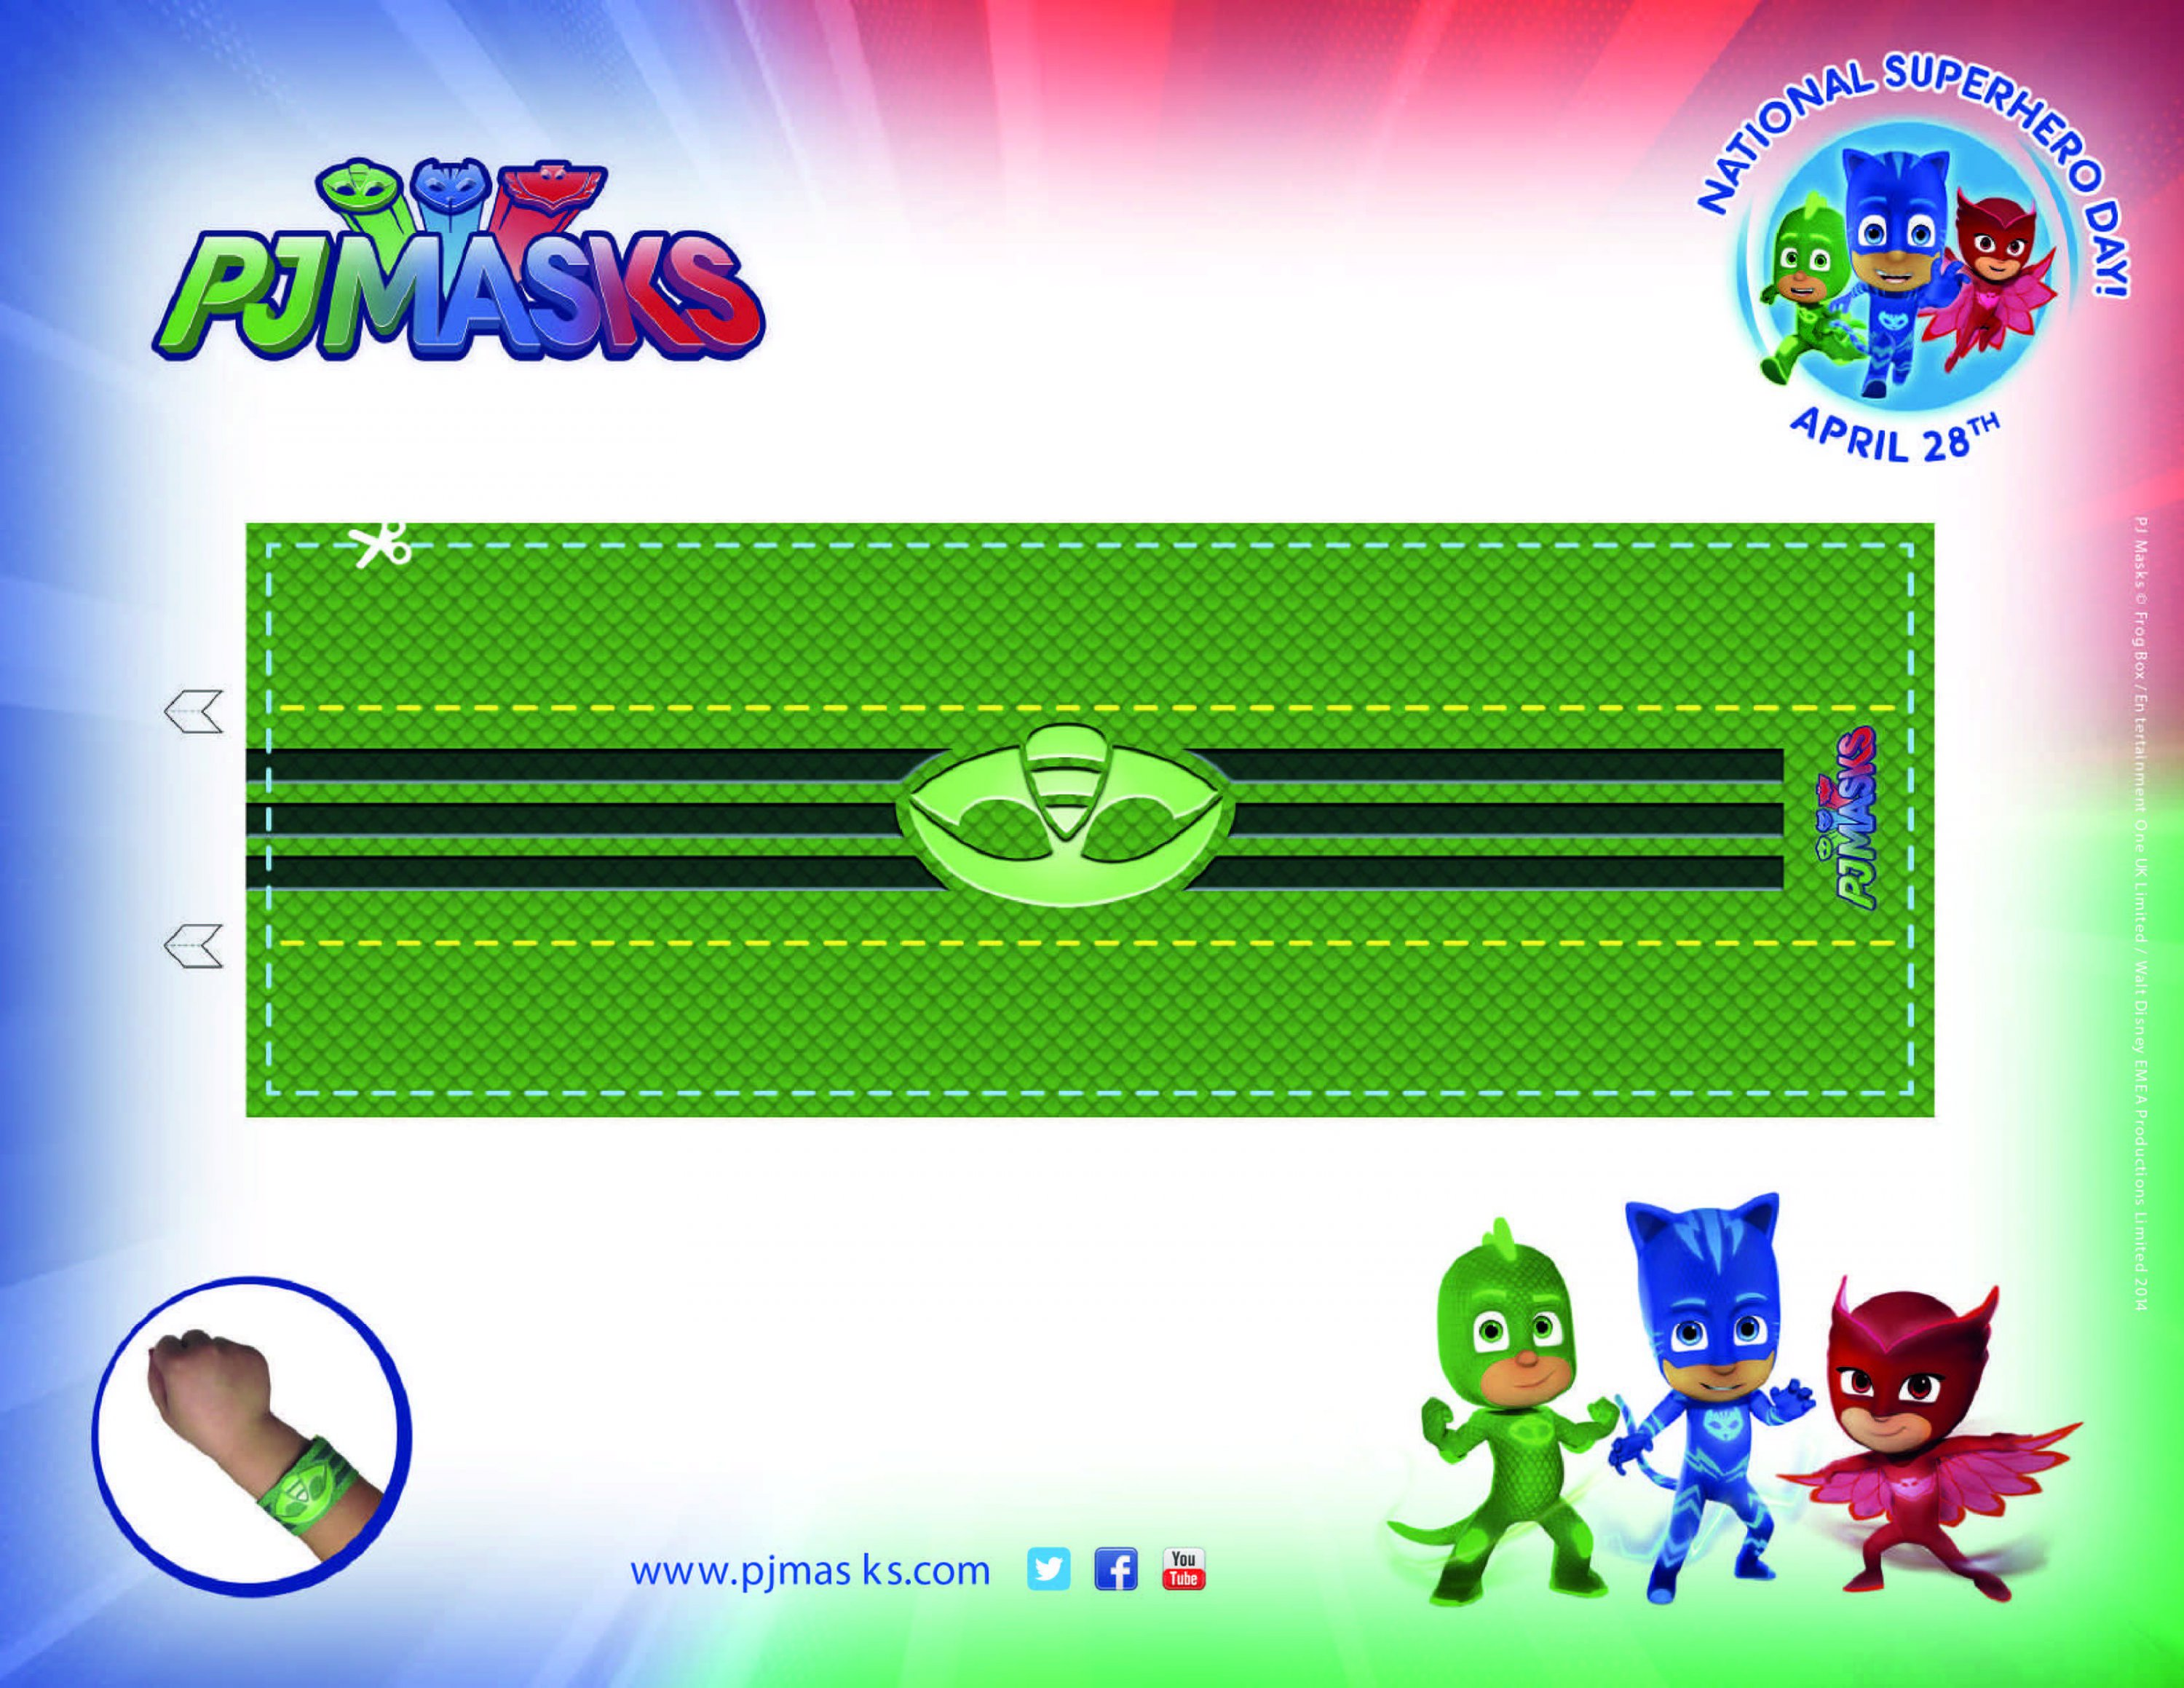 pj-masks-gecko-coloring-pages-copy-pj-masks-coloring-pages-to-and-print-for-free-fresh-pj-masks-party-printables-for-free-of-pj-masks-gecko-coloring-pages-copy-pj-masks-coloring-pages-to-and-print-for